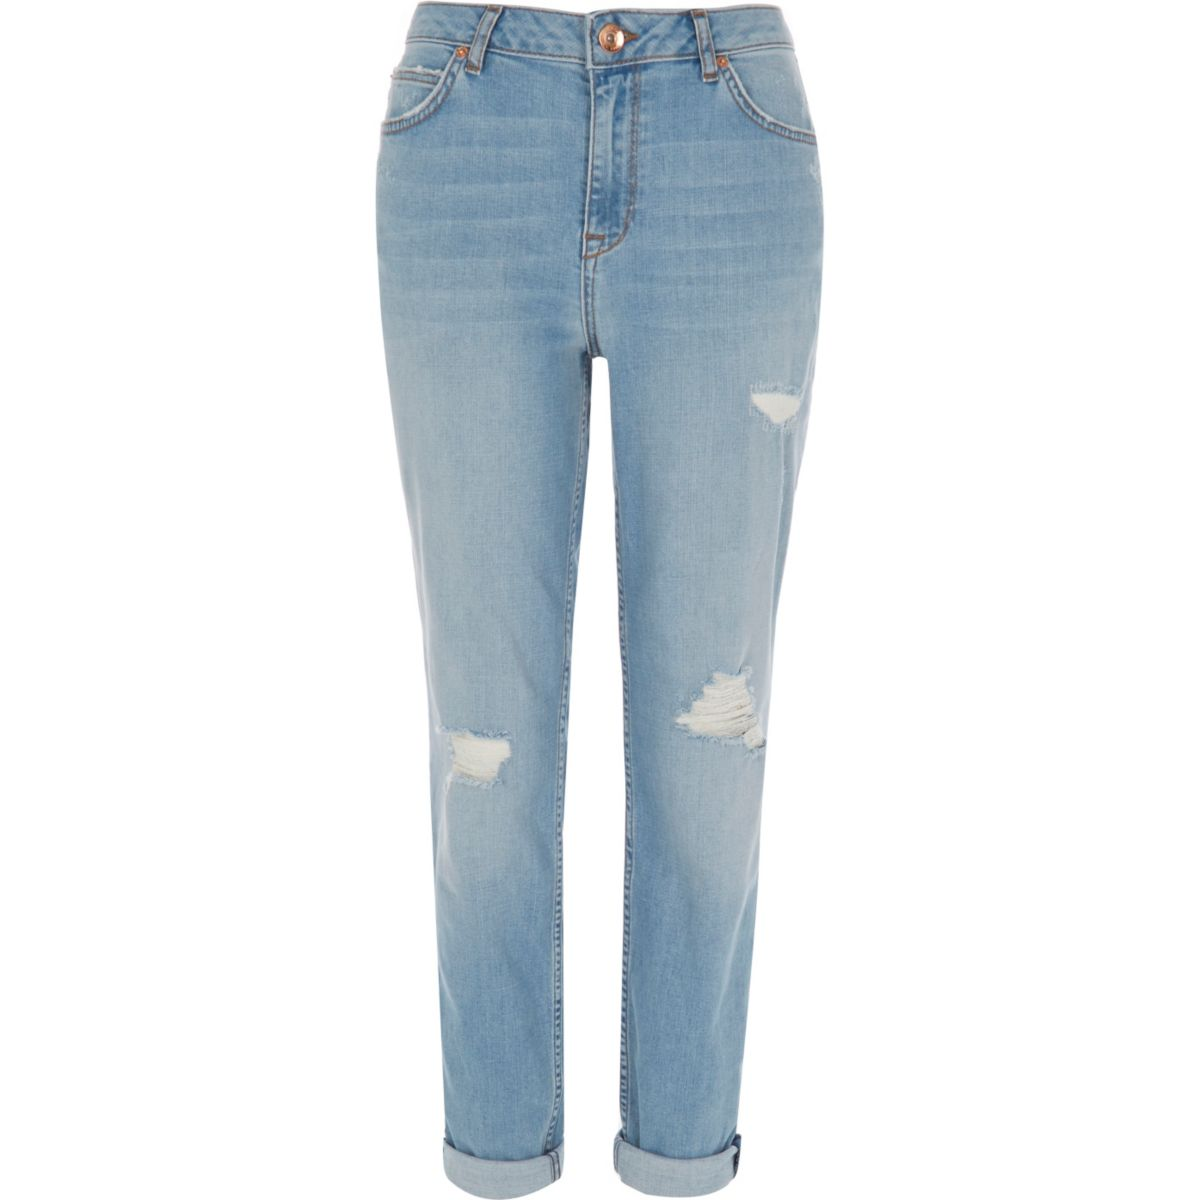 Buy low price, high quality light wash ripped boyfriend jeans with worldwide shipping on nakedprogrammzce.cf